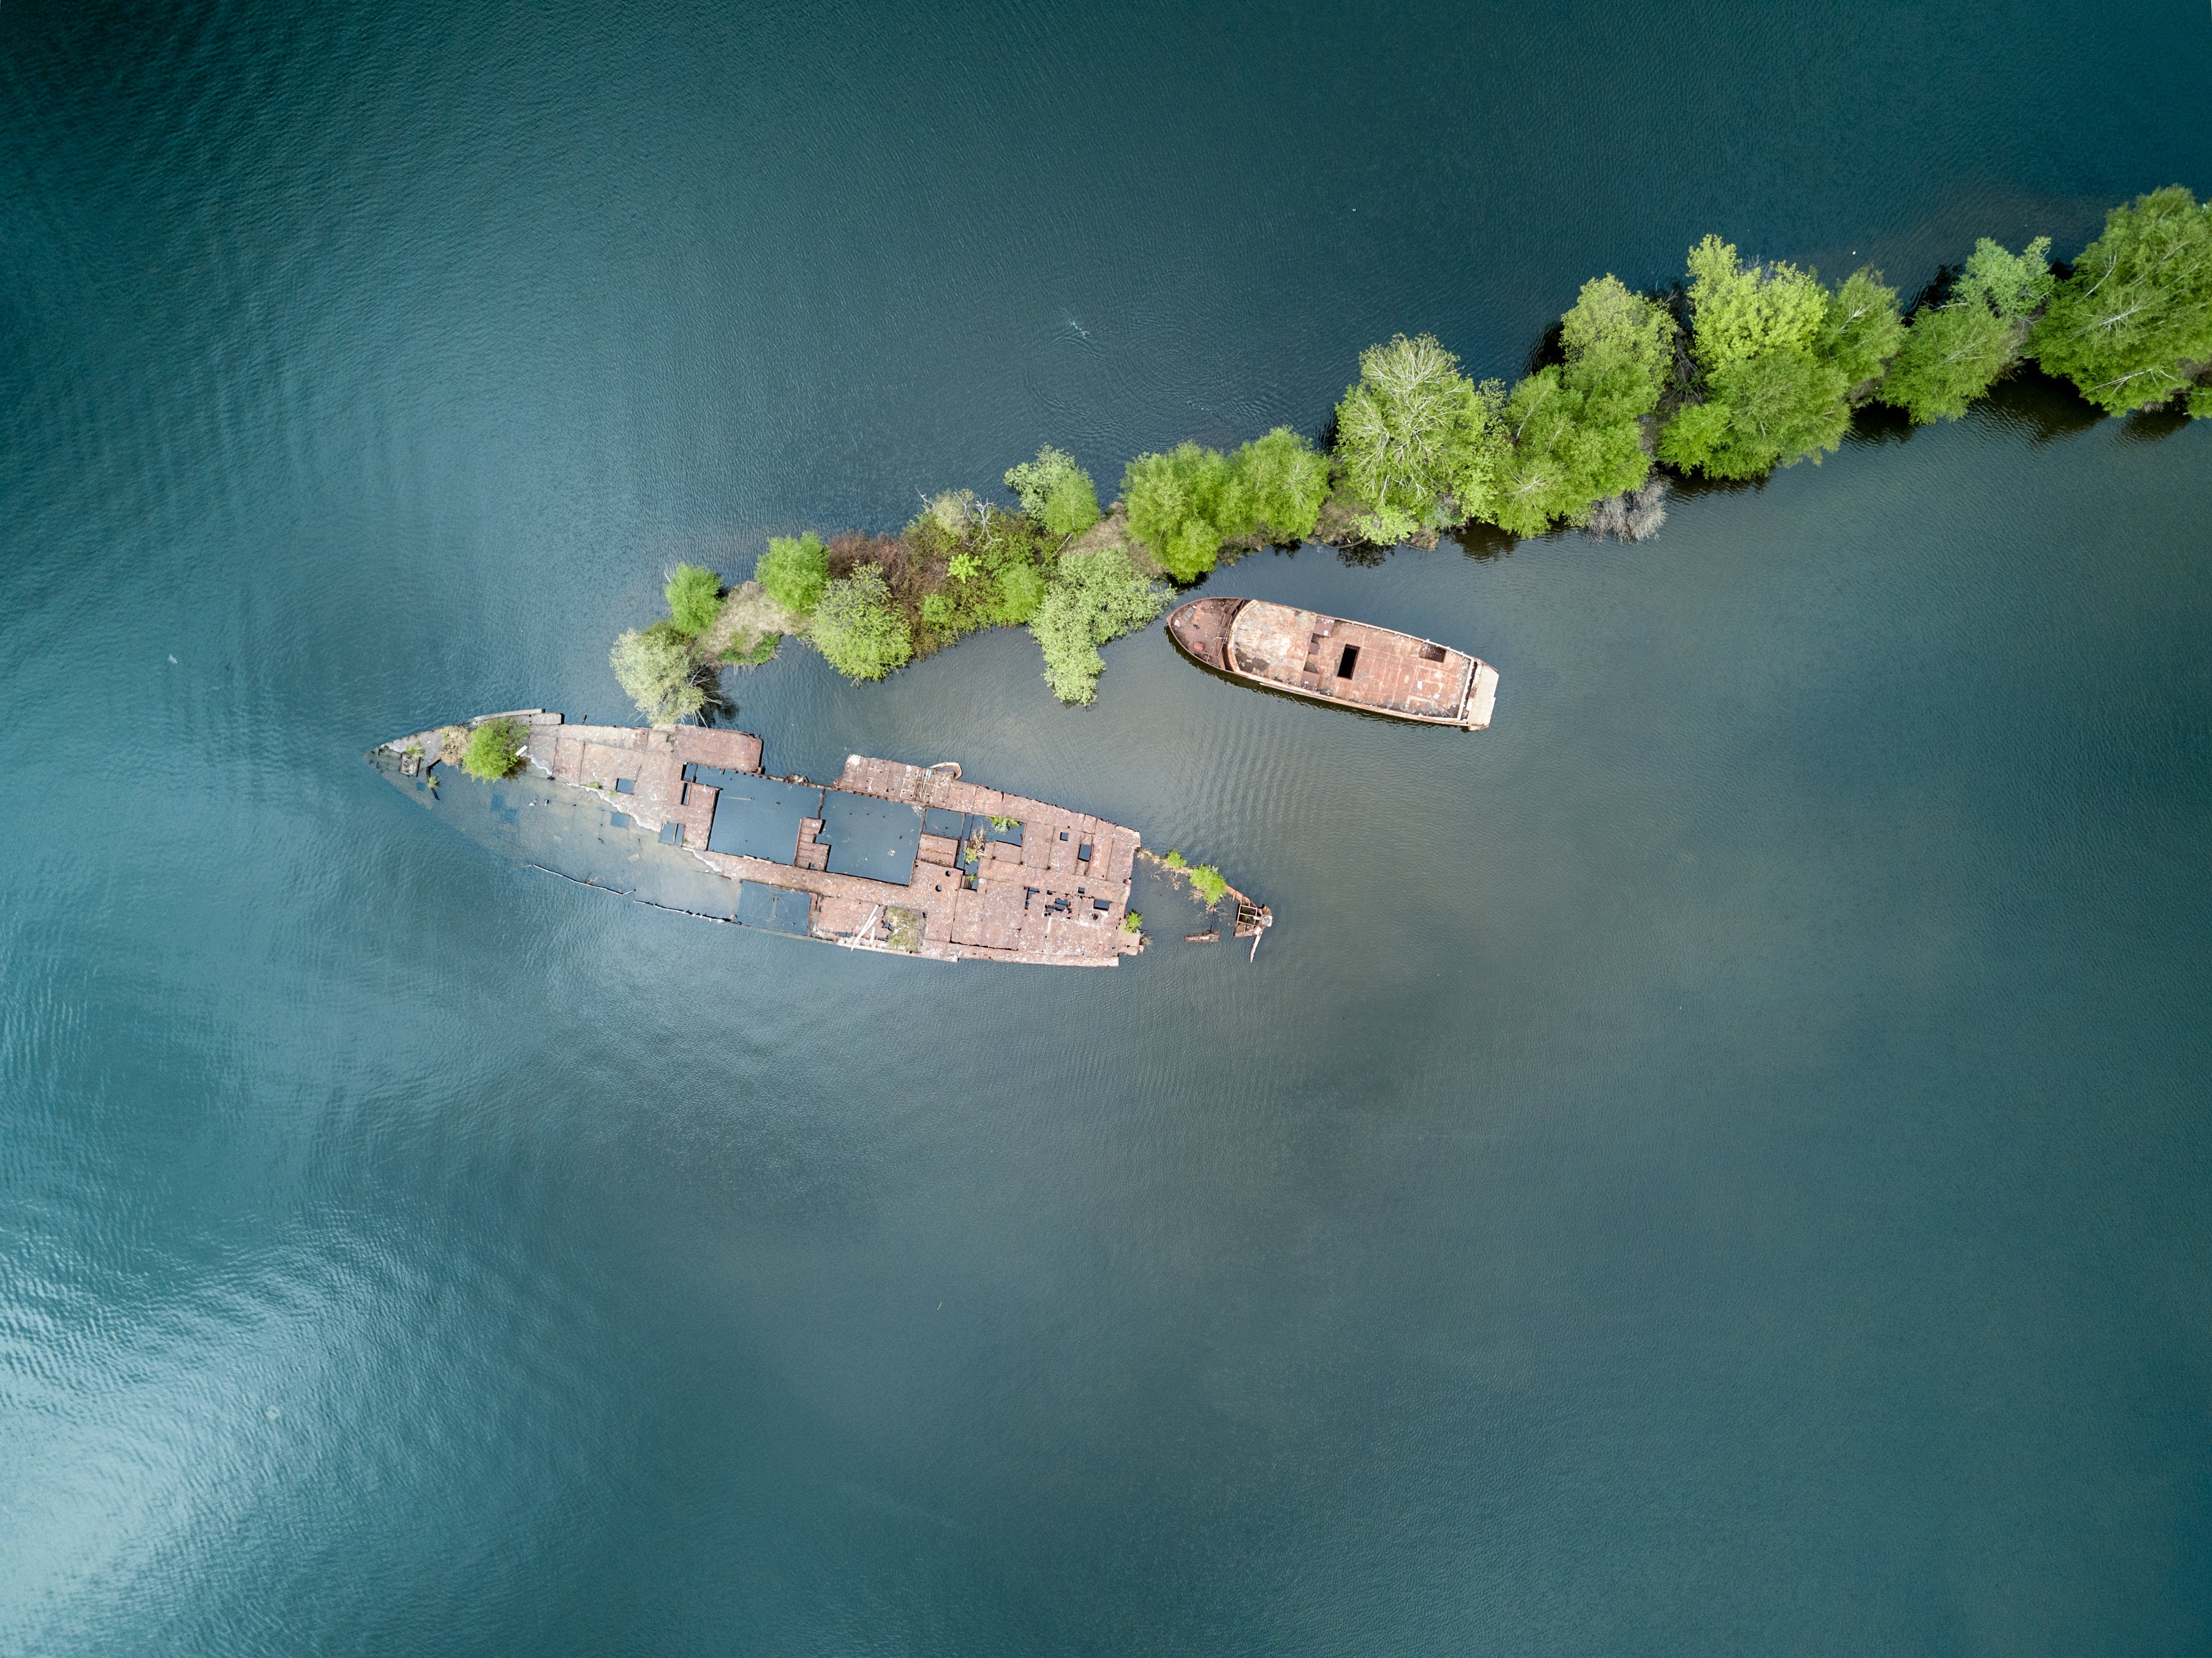 Aerial Photography of Boat and Green Trees on Top of Water